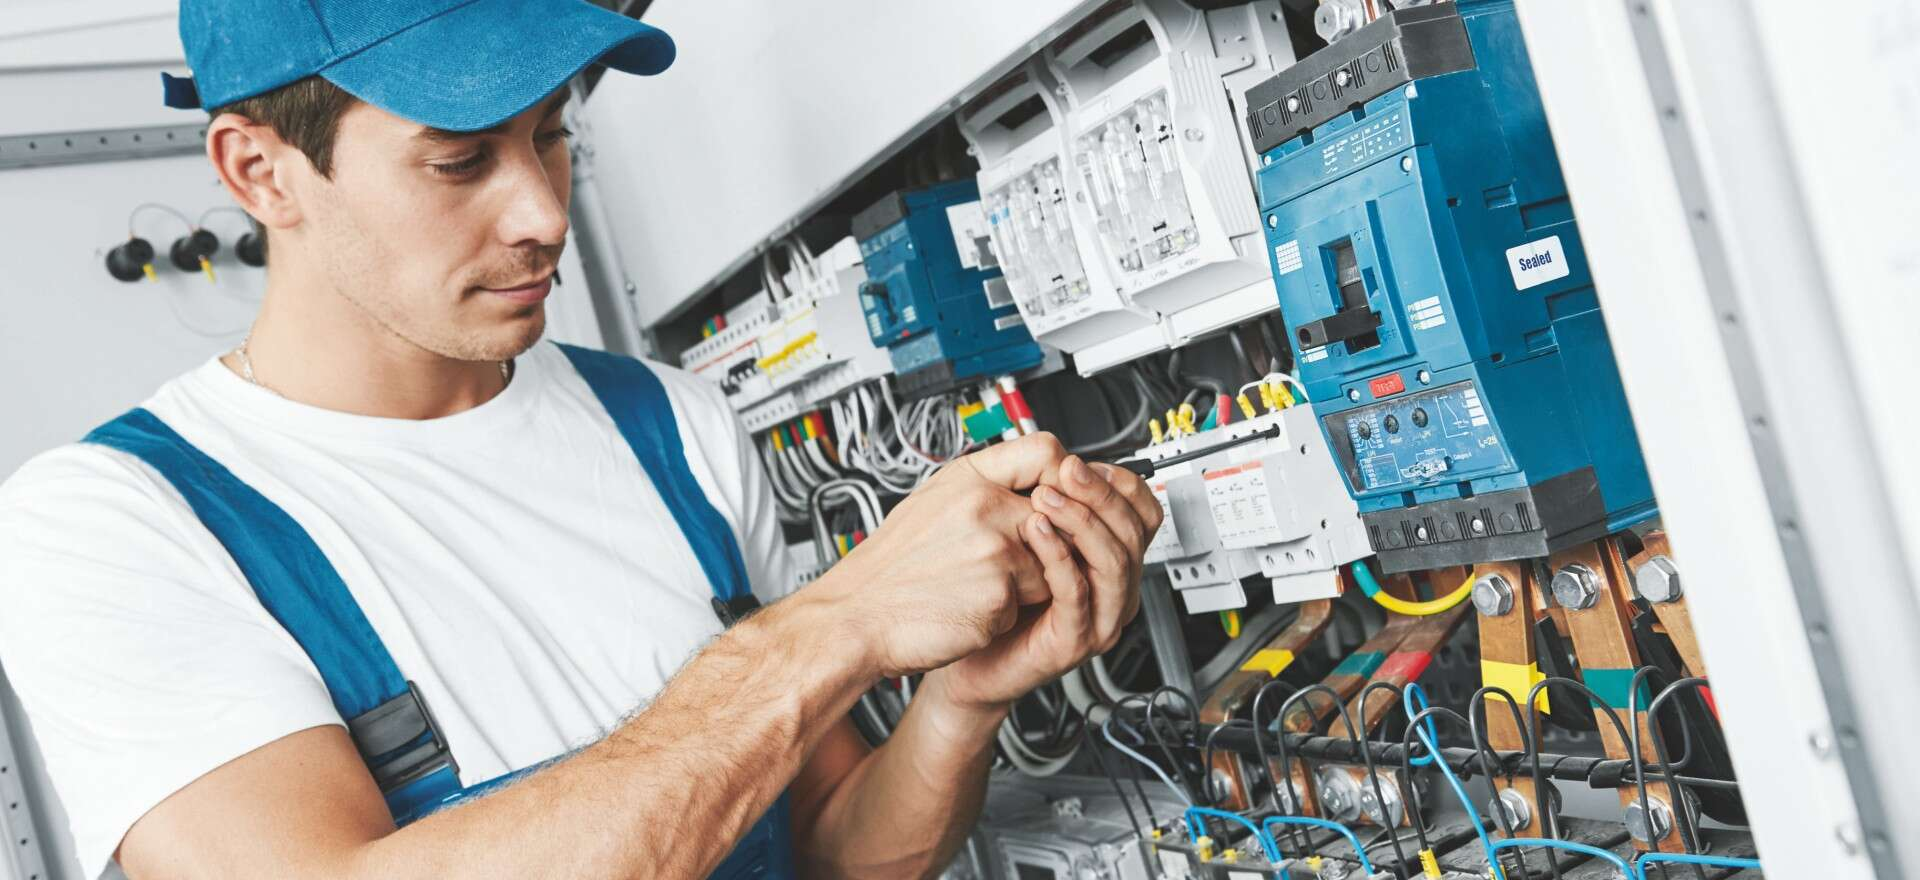 Maintenance-Machines-Mechanical systems-Electrical installations-Training systems